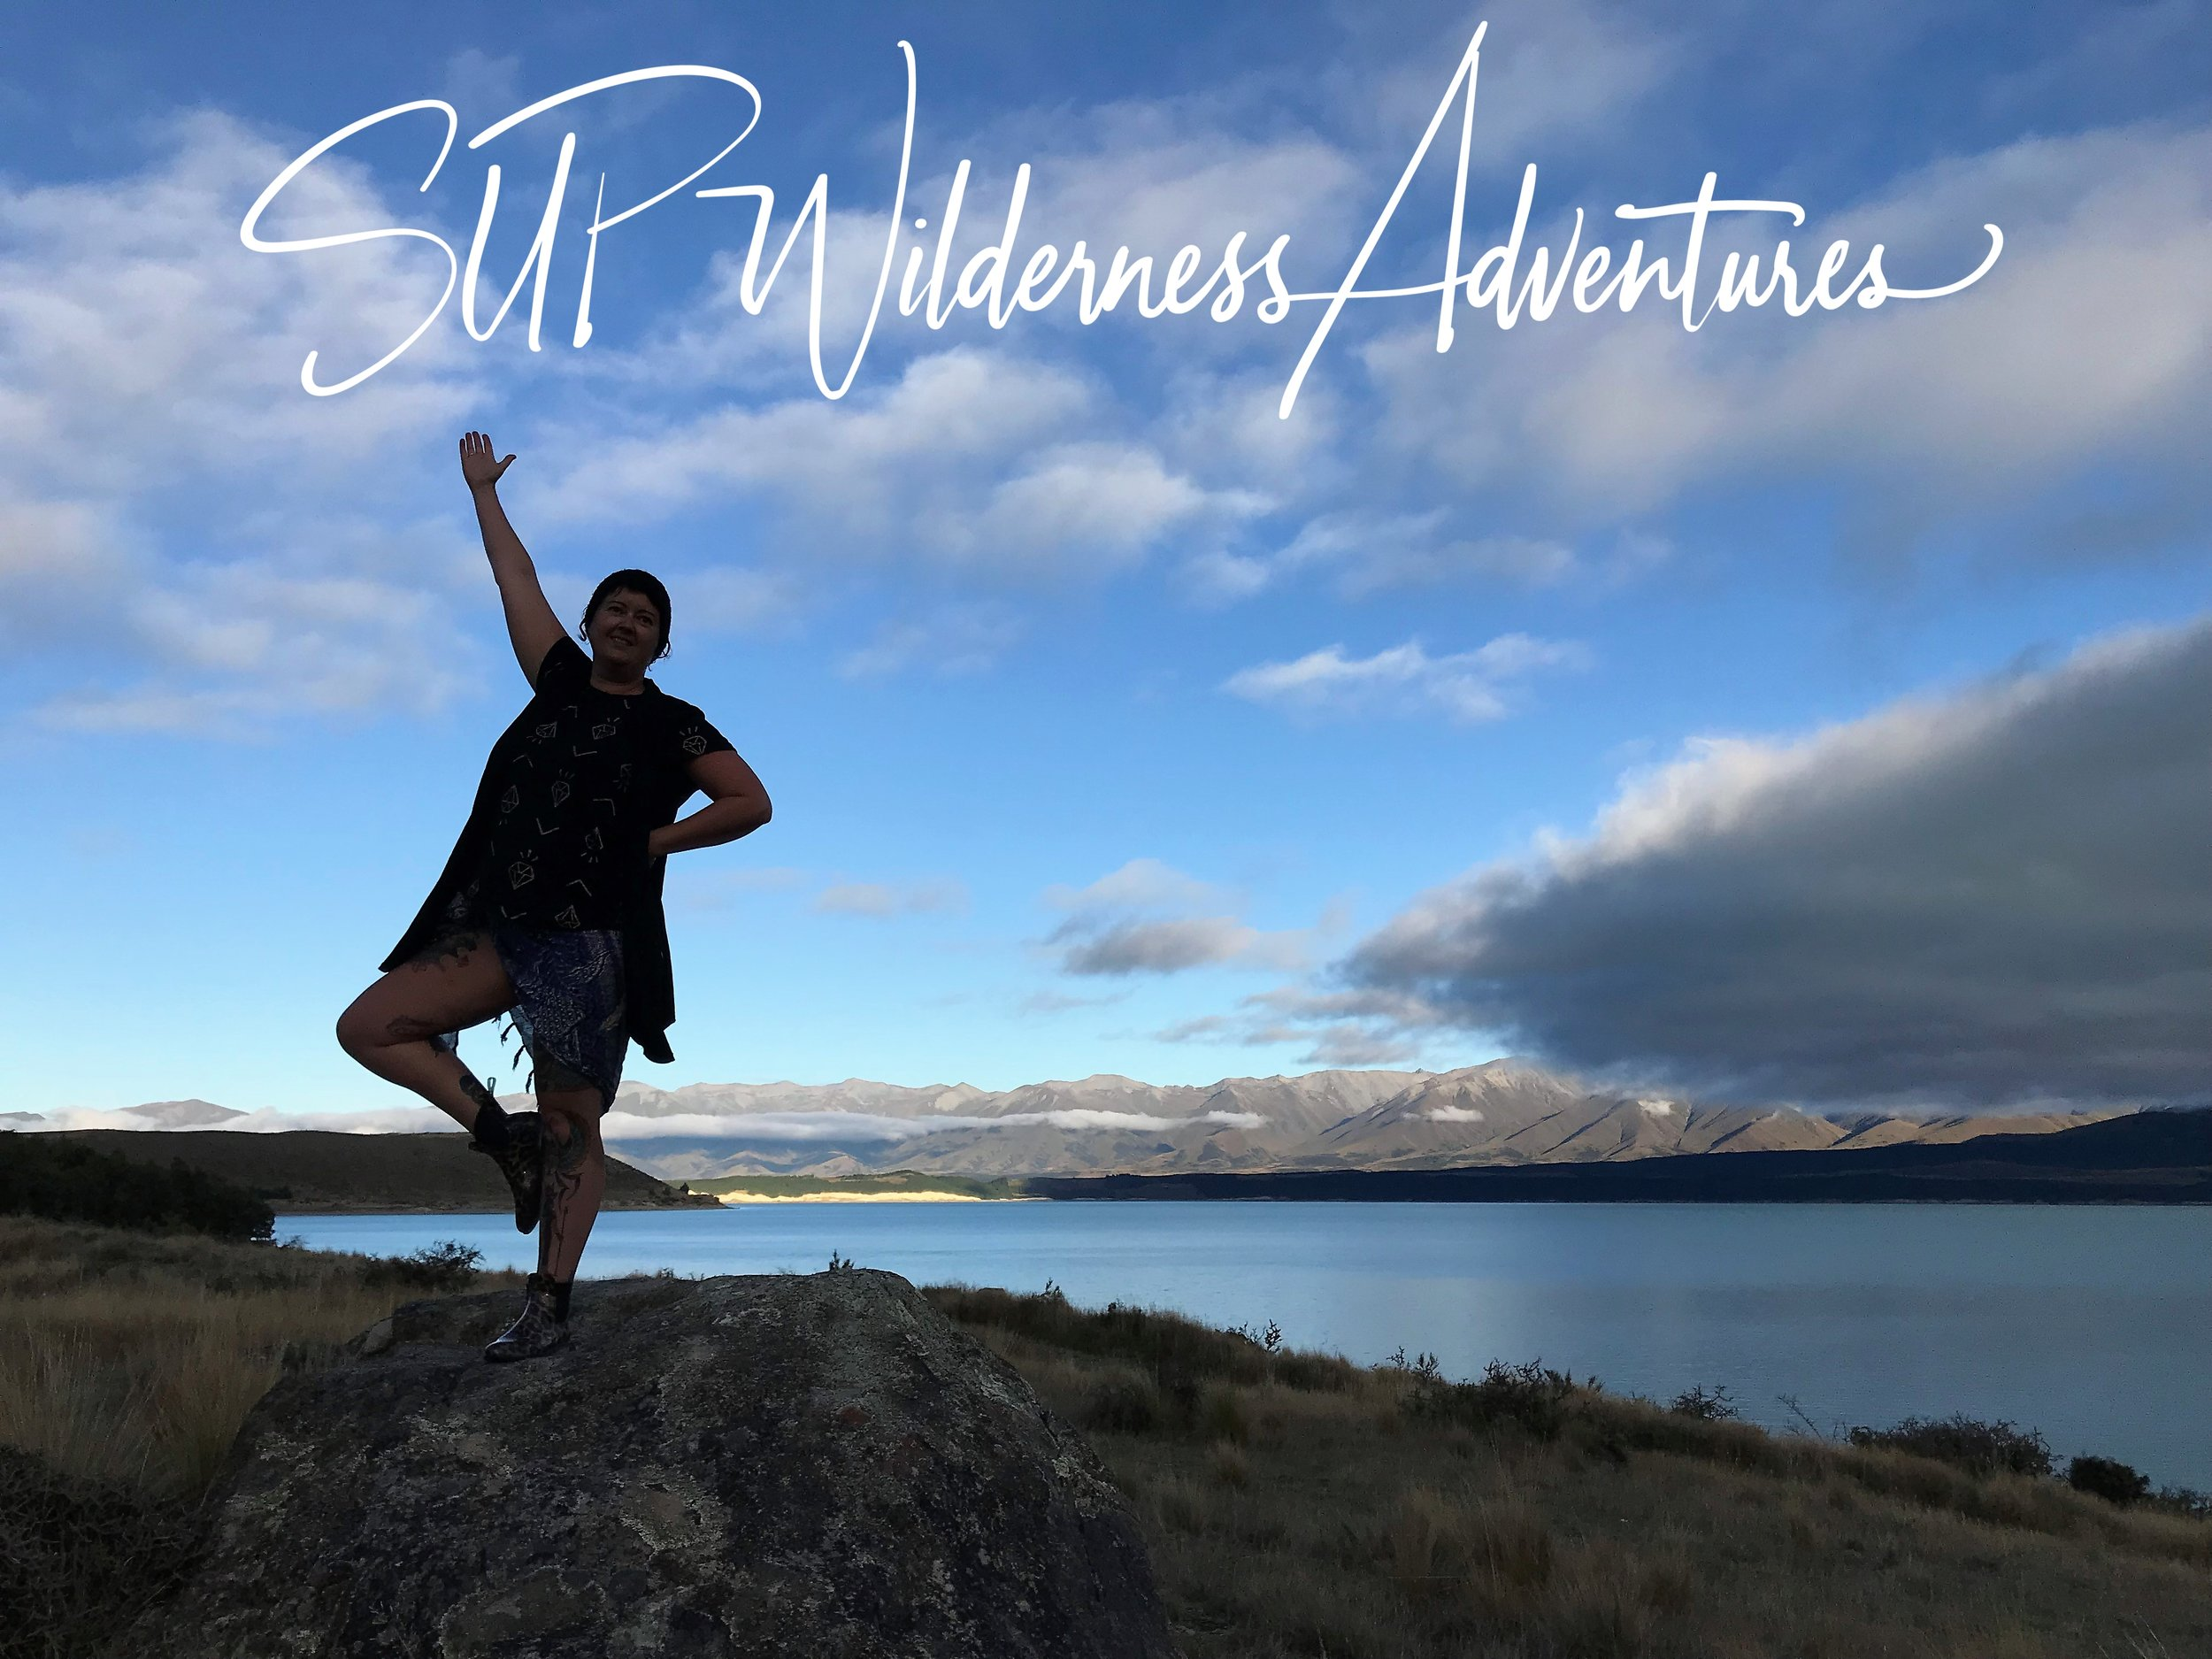 SUP Wilderness Adventures 9 Brenda.jpg